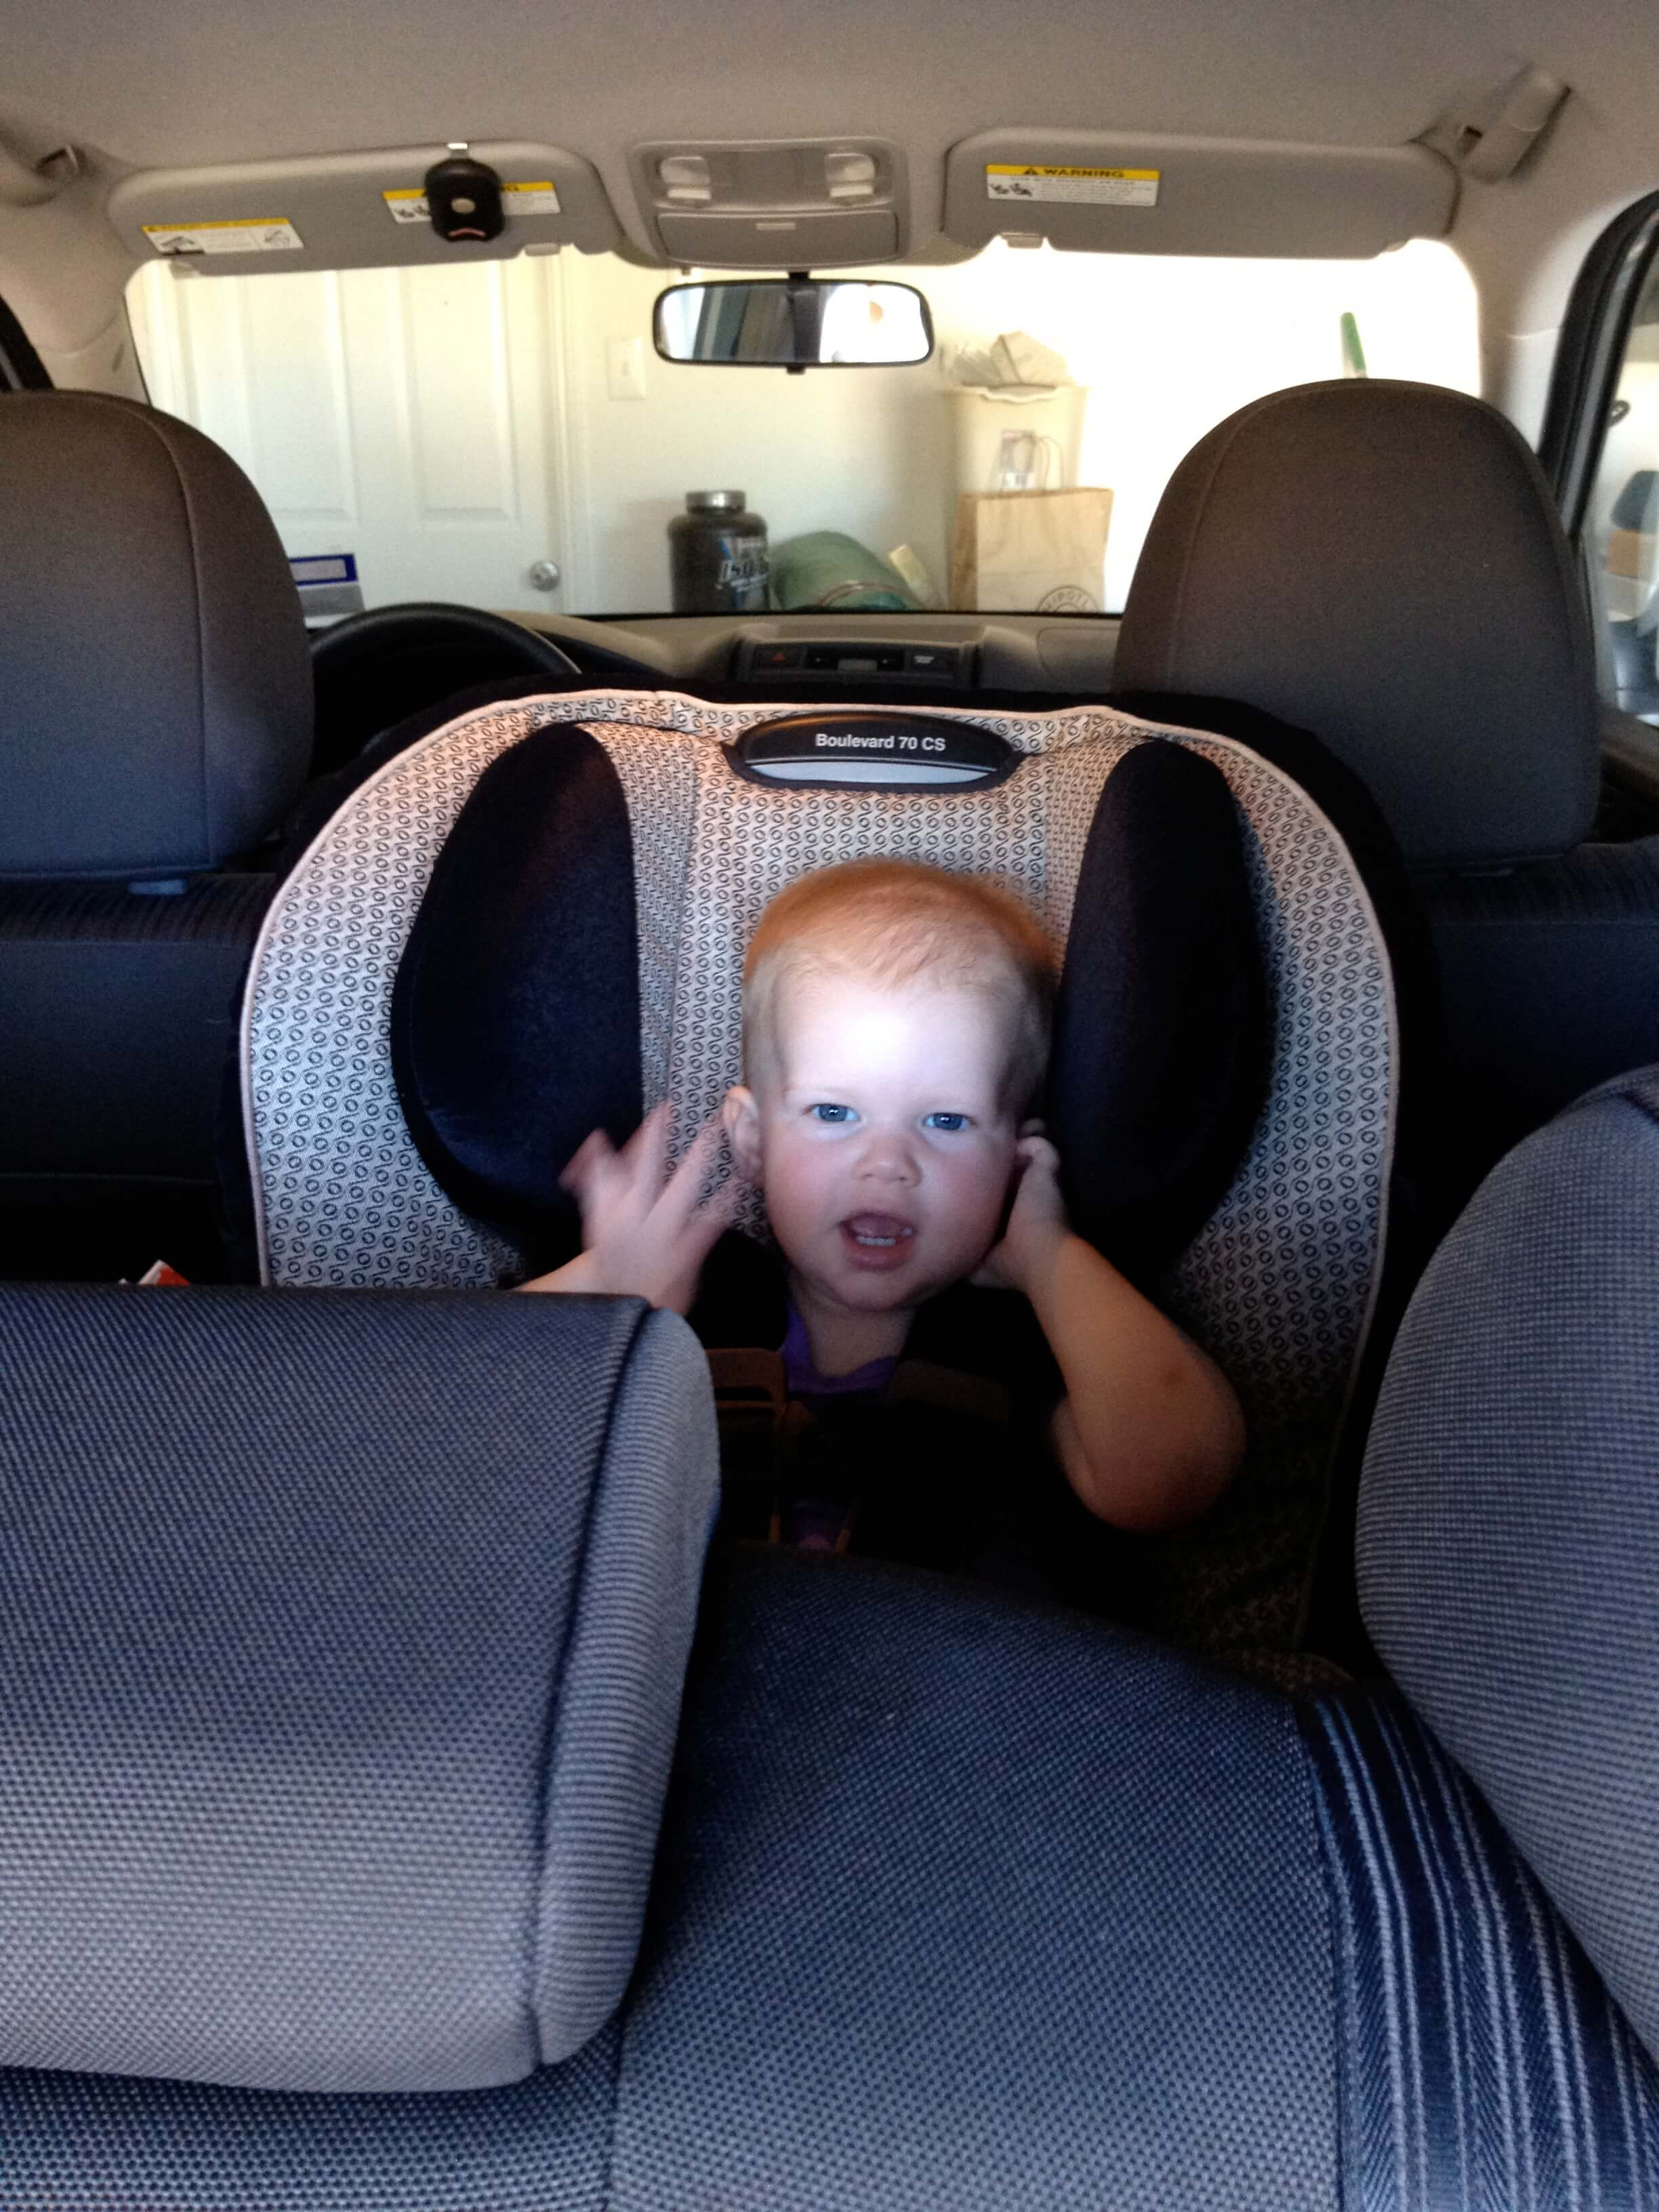 Car Seat Safety 101